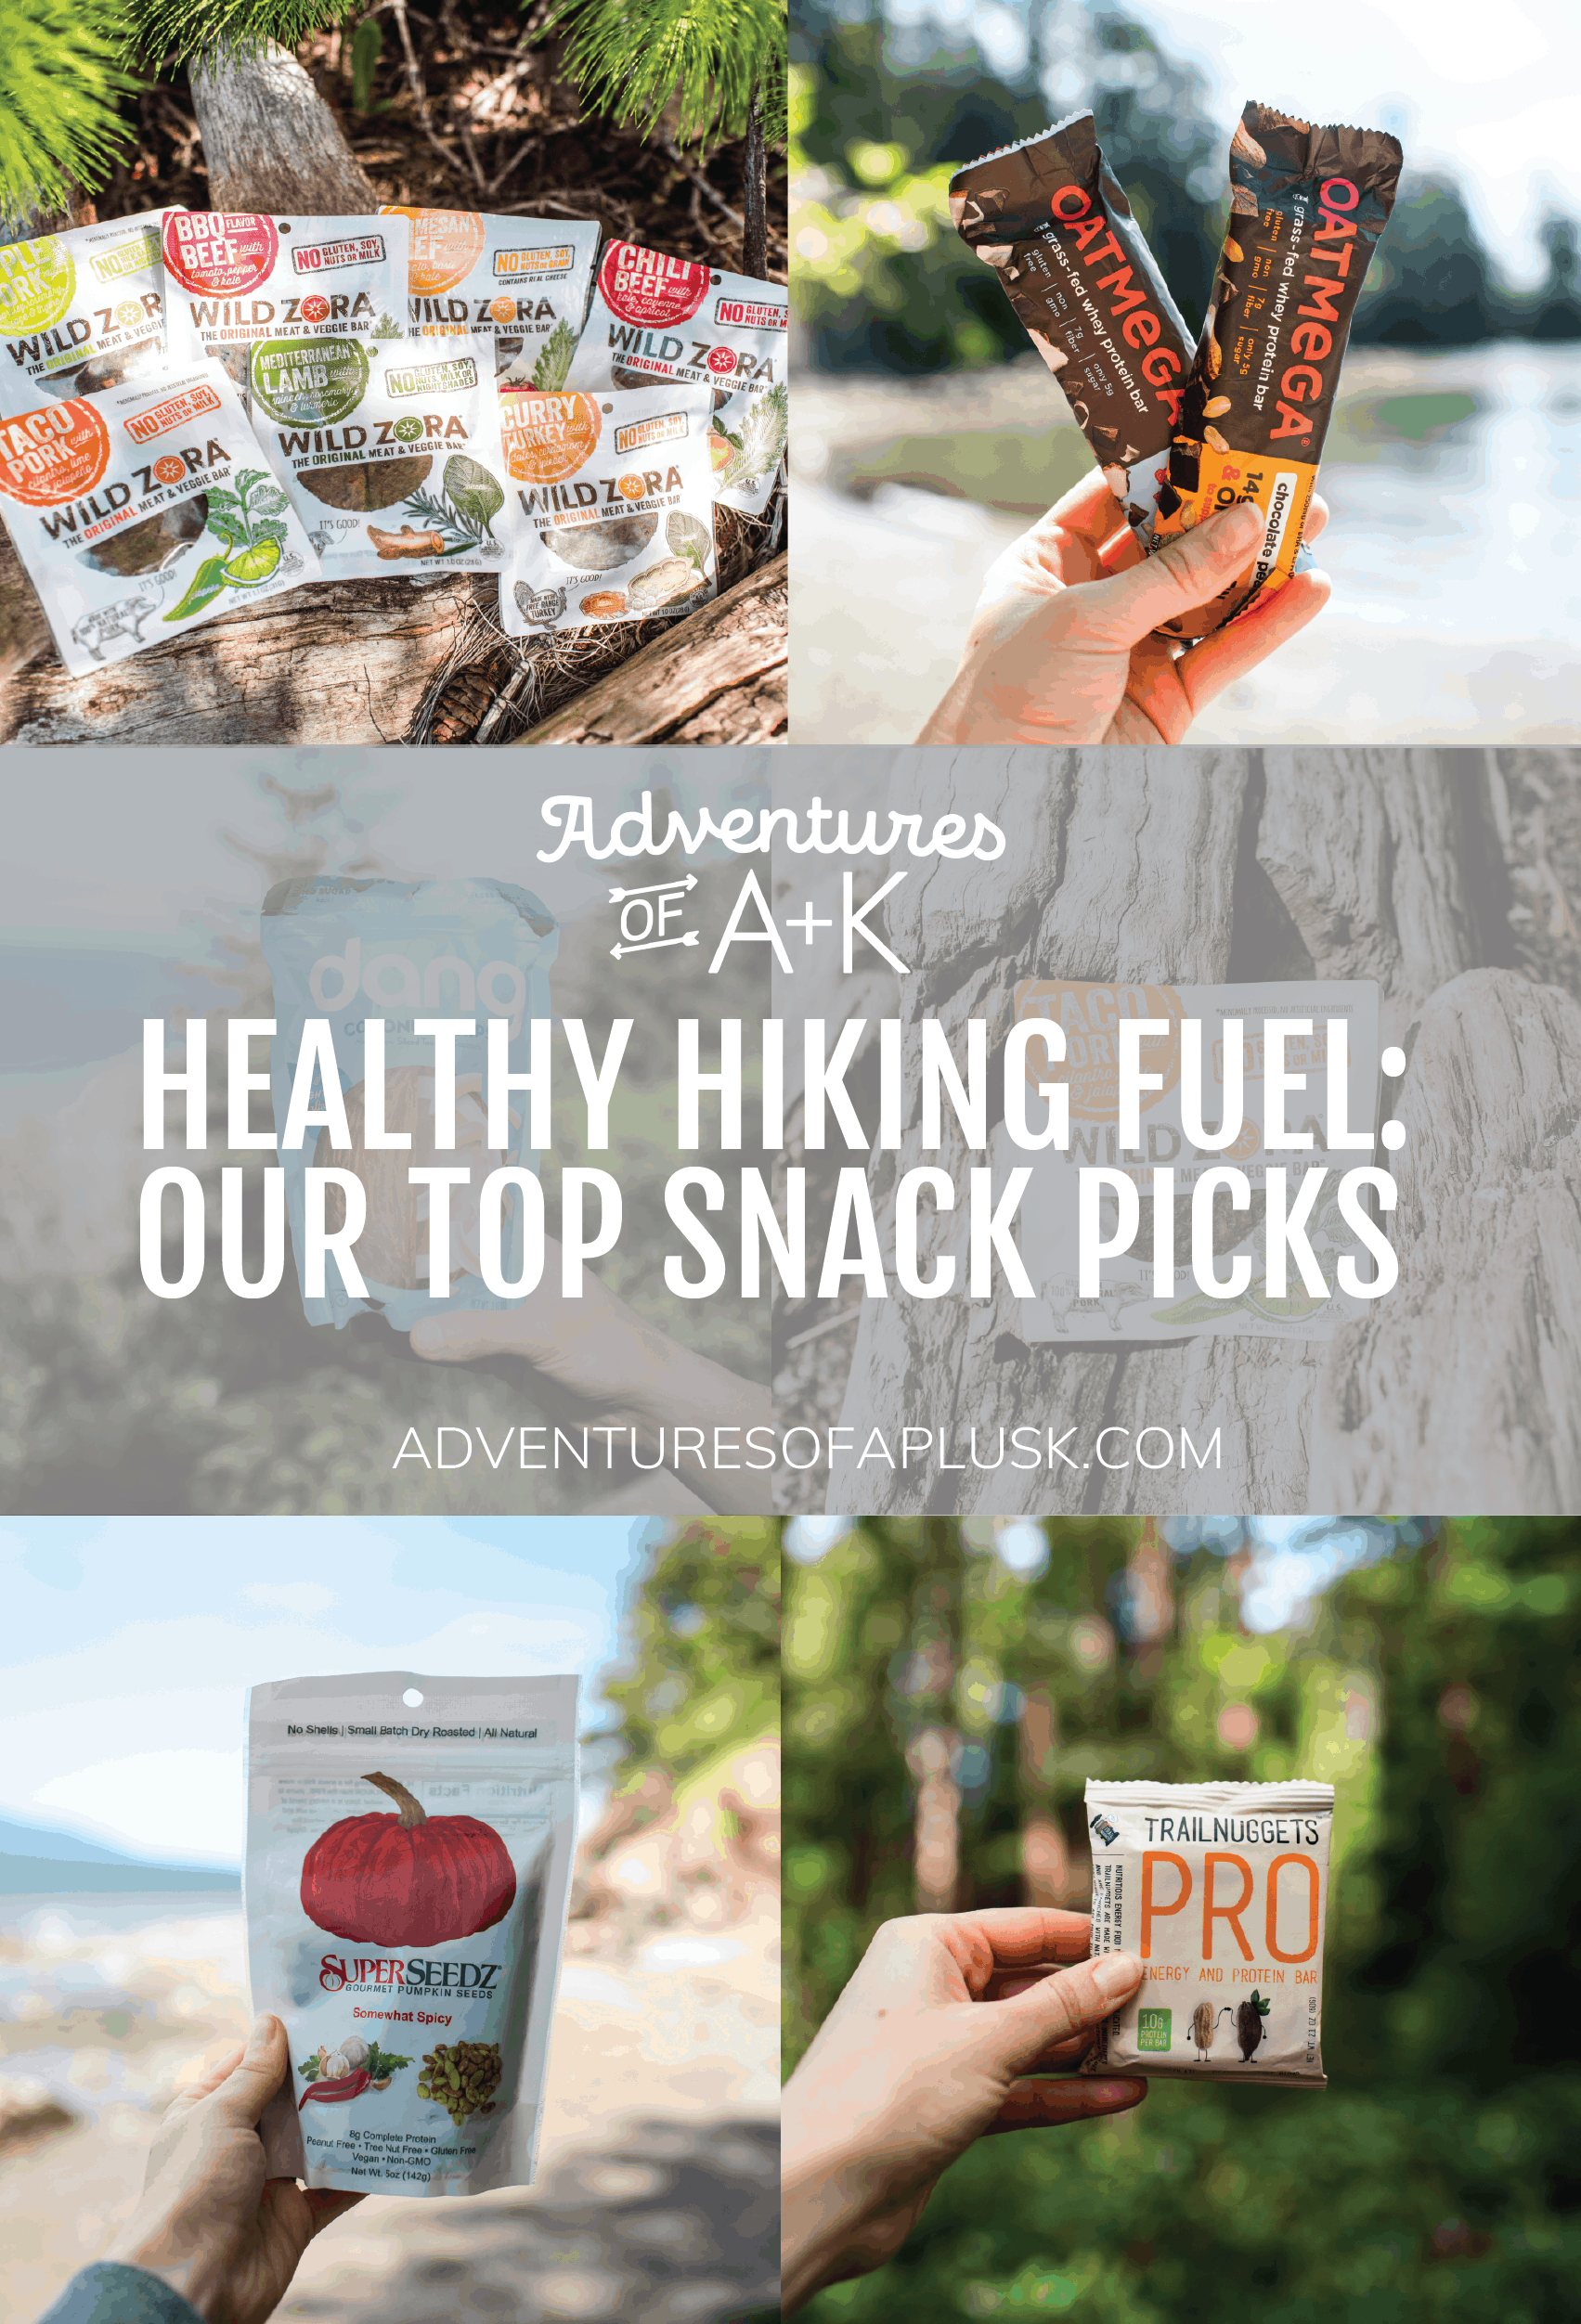 Healthy hiking snacks | Hiking food | Whole30 snacks | Keto snacks | Healthy Snacks | Protein Bars | Paleo Snacks | Hiking food ideas #keto #paleo #whole30